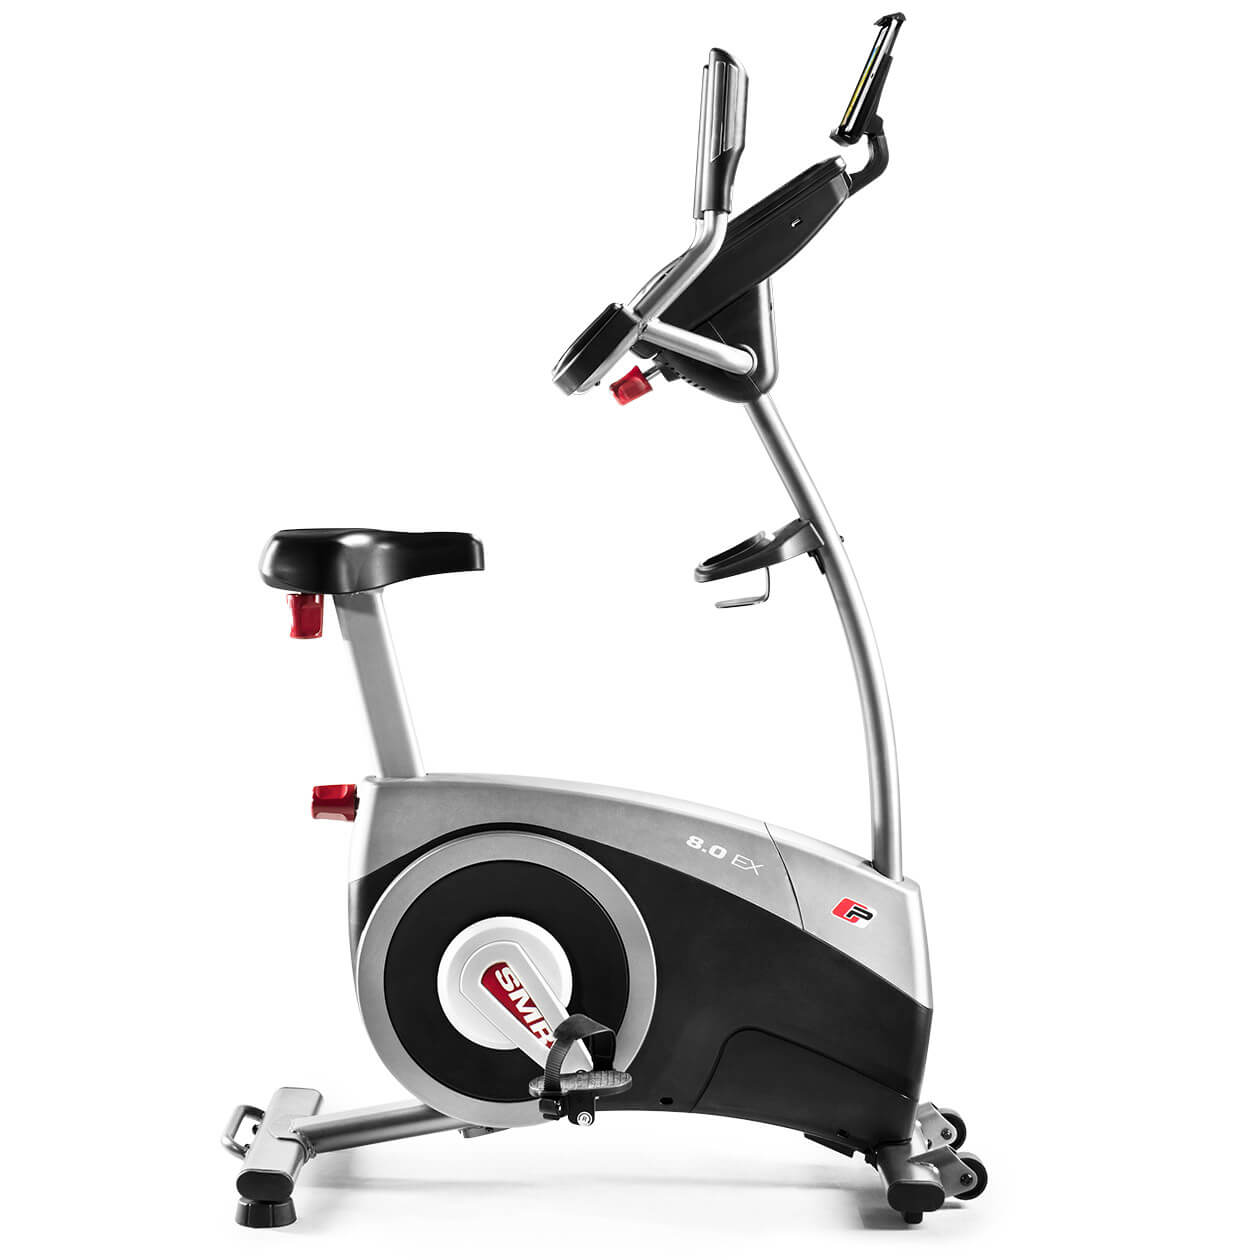 ProForm Exercise Bikes 8.0 EX  gallery image 6